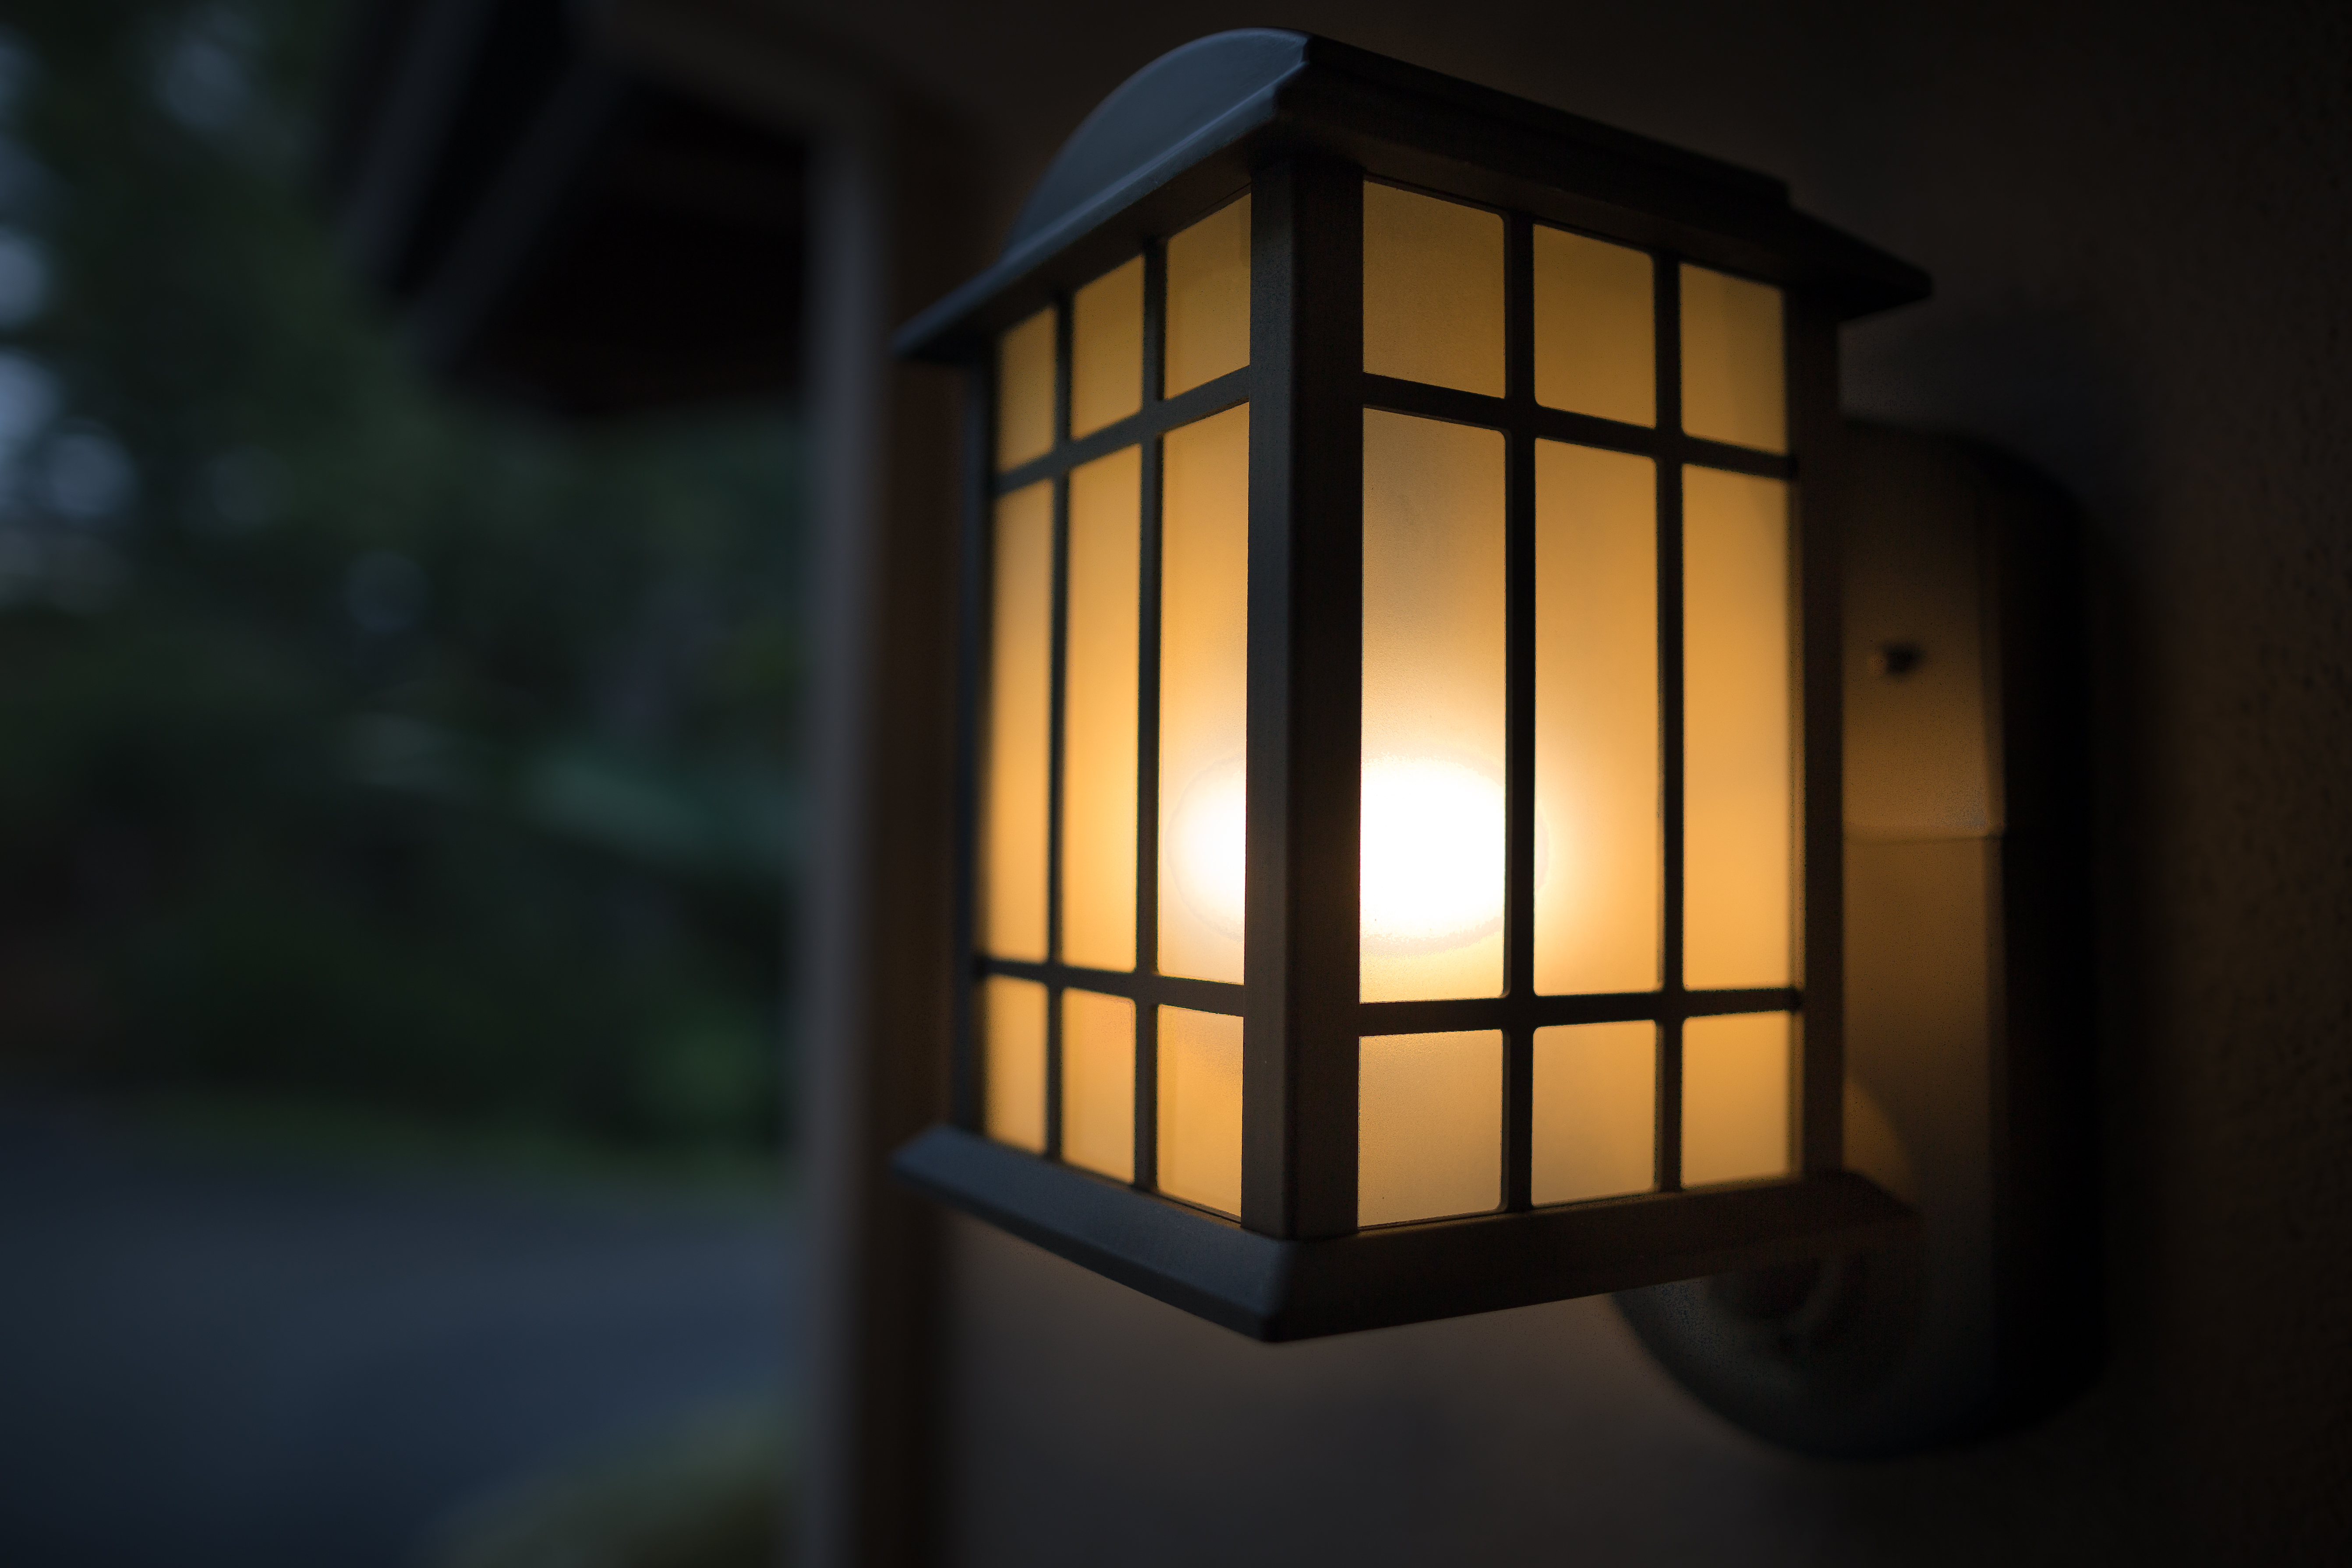 Kuna is a light fixture that doubles as a home security system the kuna is a light fixture that doubles as a home security system the verge arubaitofo Choice Image